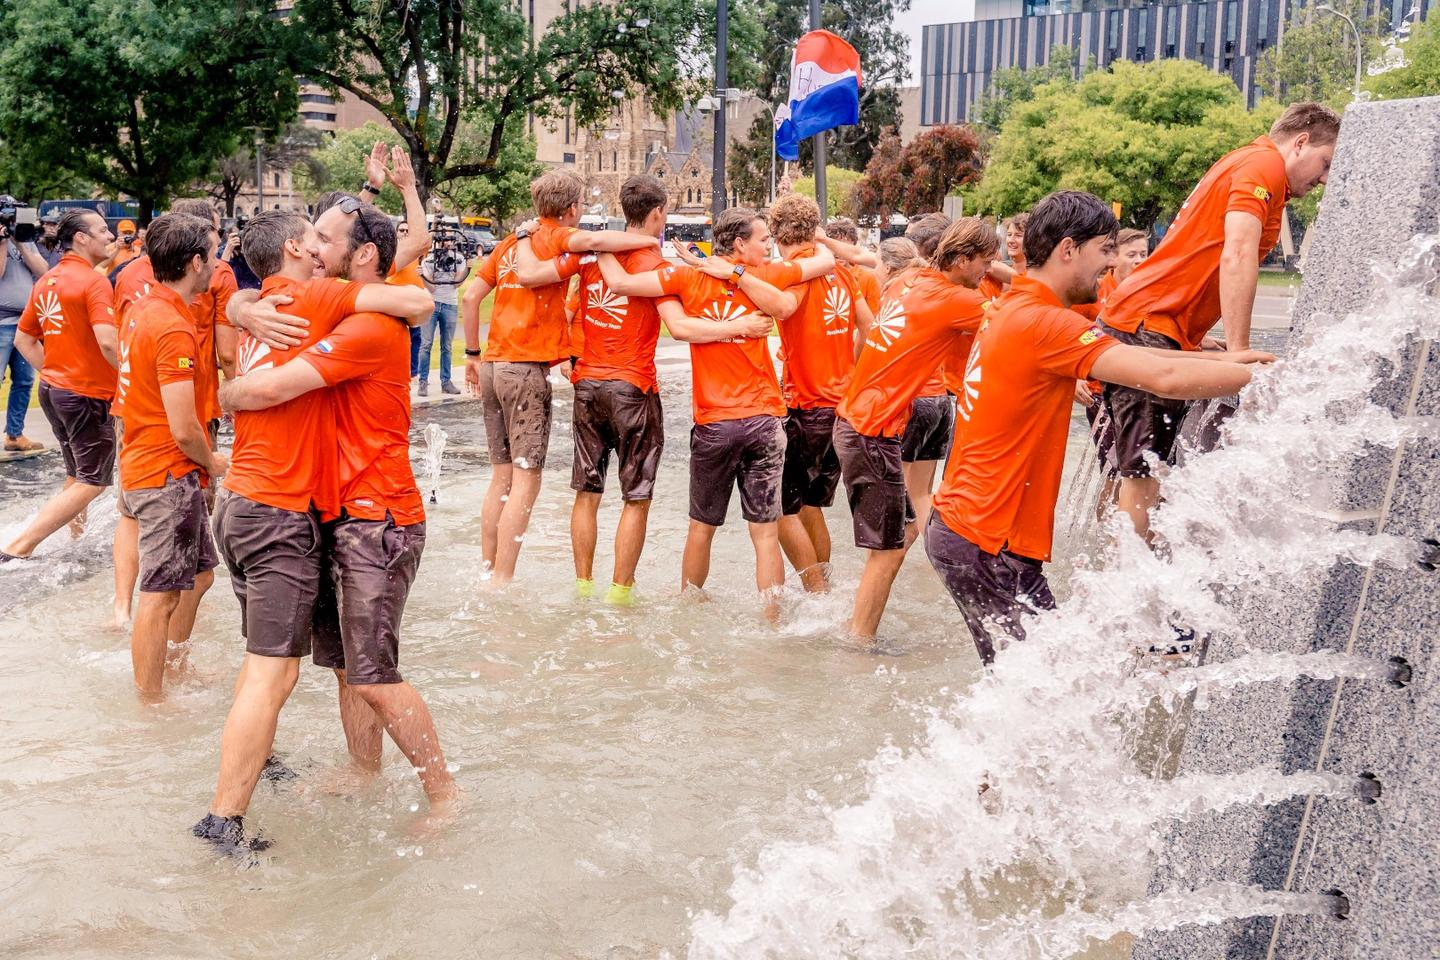 The Nuon Solar Team celebrates its seventh title in the World Solar Challenge